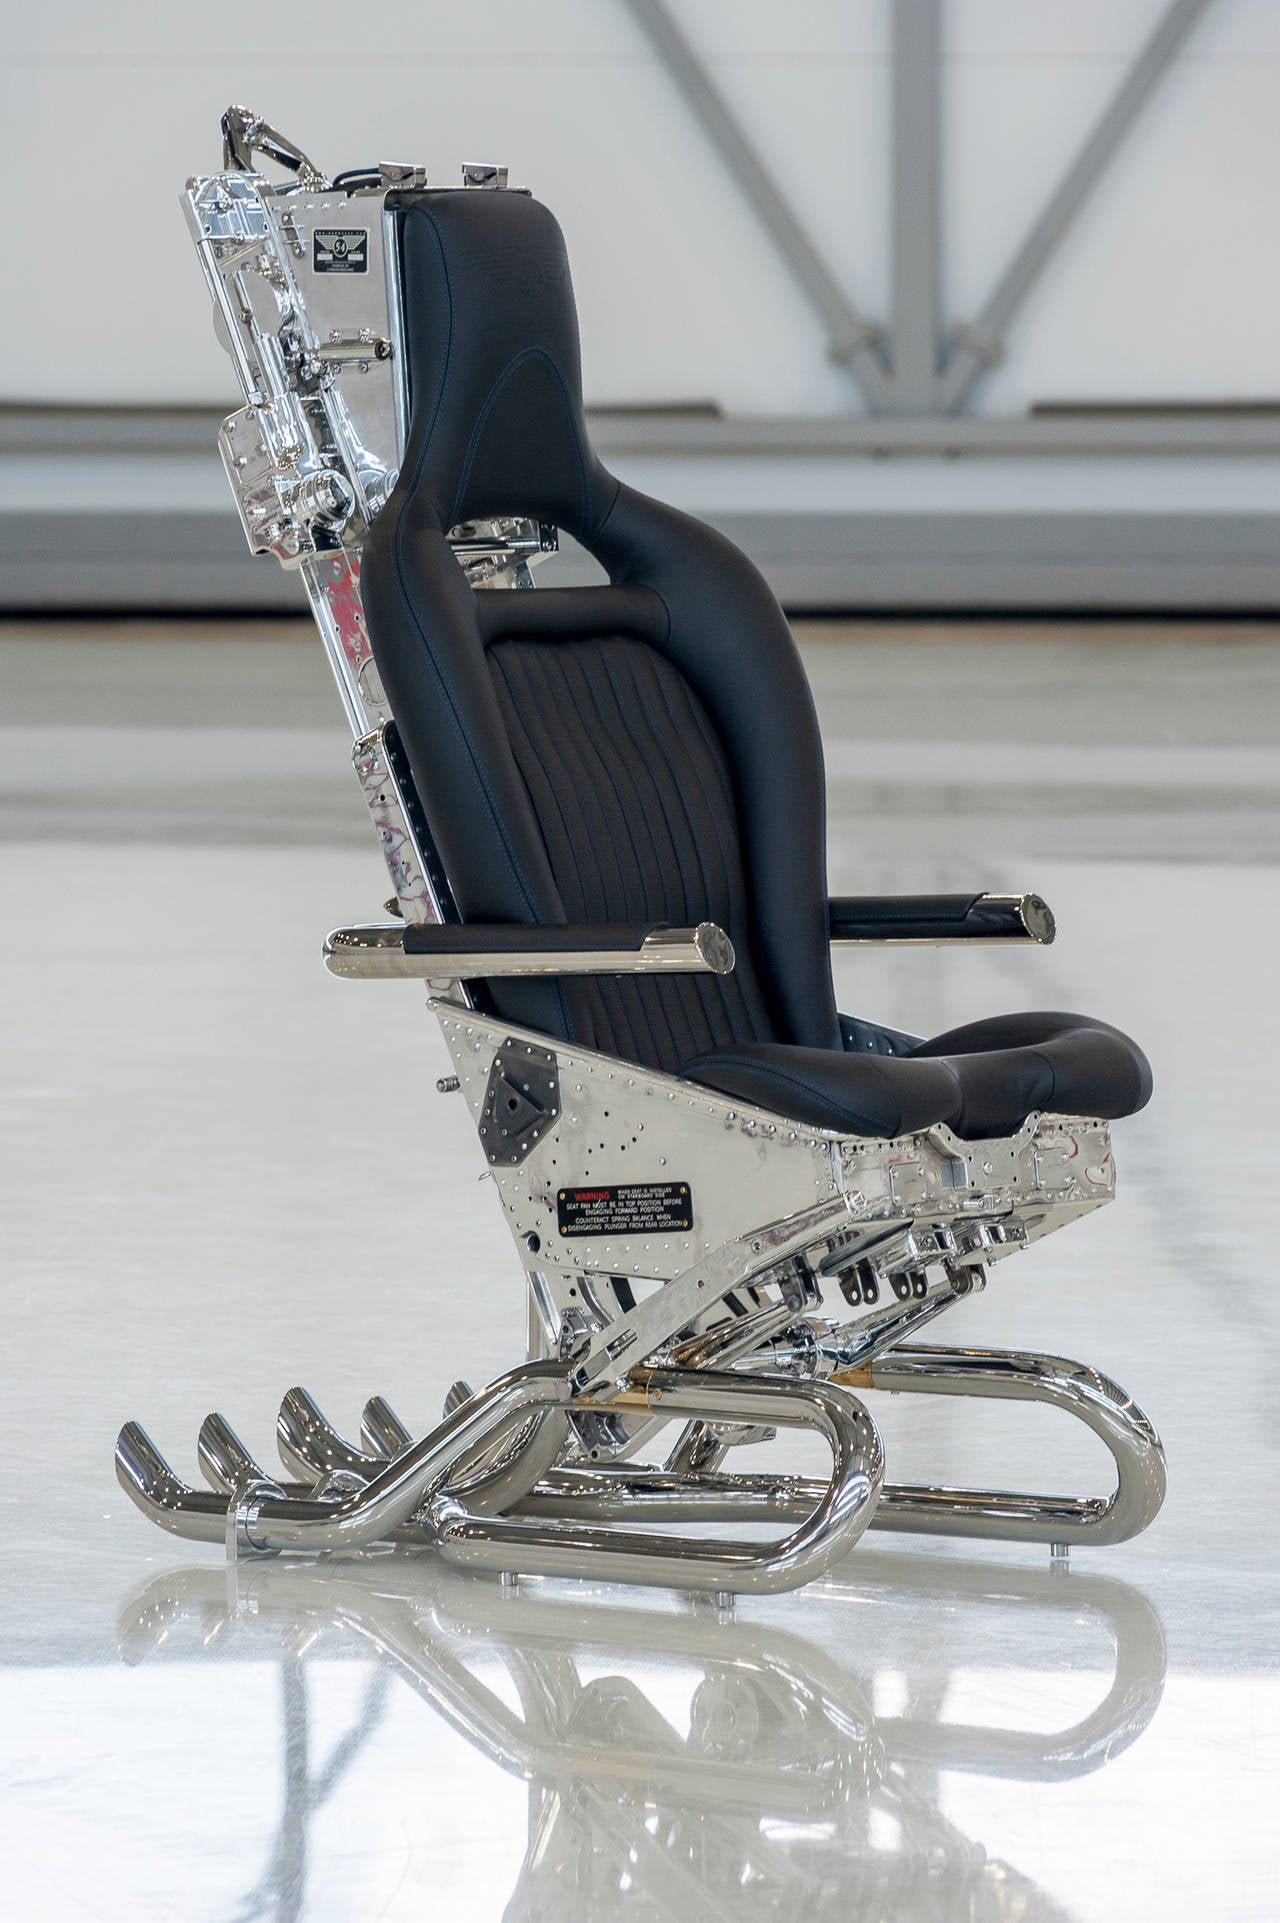 ejection seat office chair first years high martin baker mk3 black edition for